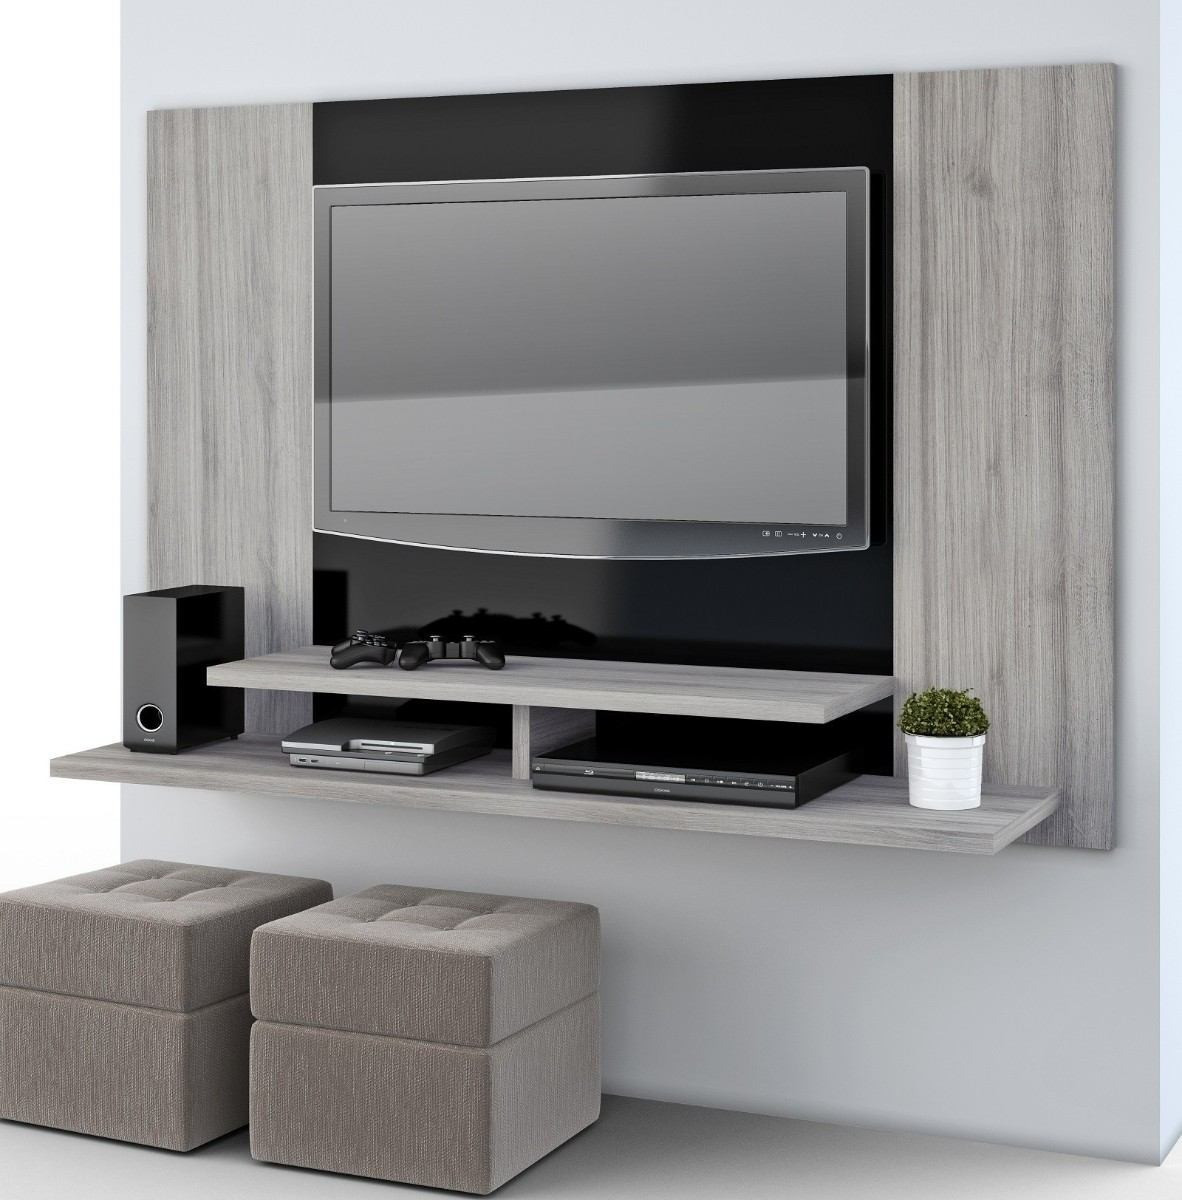 Muebles Para Tv Modernos Innovador Mueble Flotante Para Tv Moderno Ref Manhatan $ 430 000 Of Muebles Para Tv Modernos Adorable Decore On Pinterest